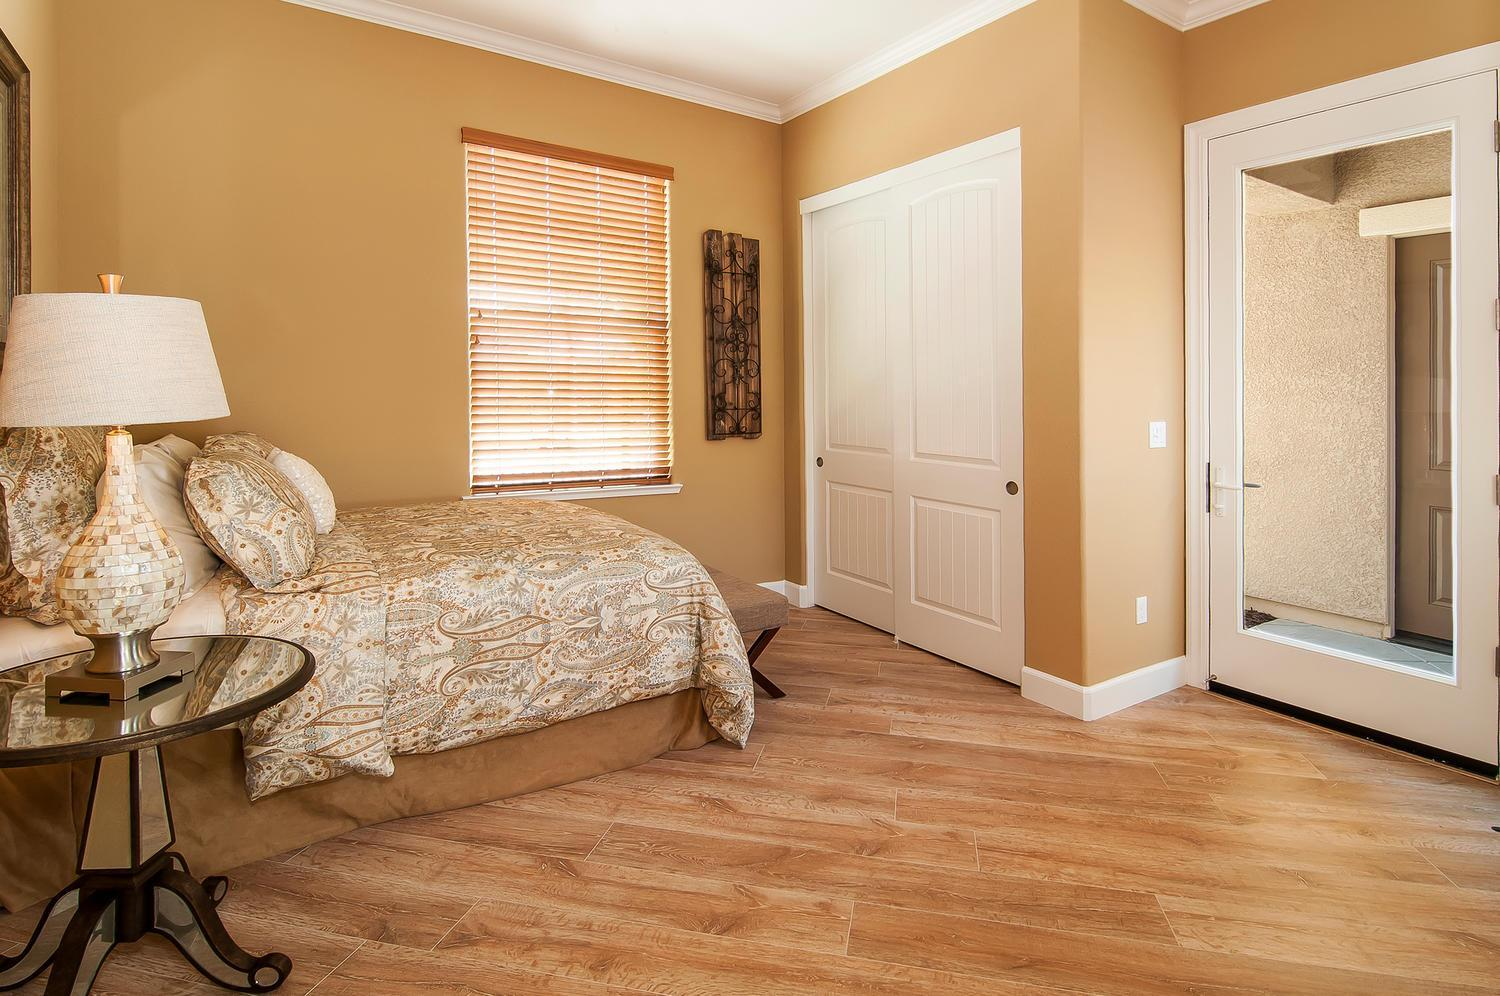 Bedroom featured in the Residence 6 By Legacy Homes in Santa Cruz, CA